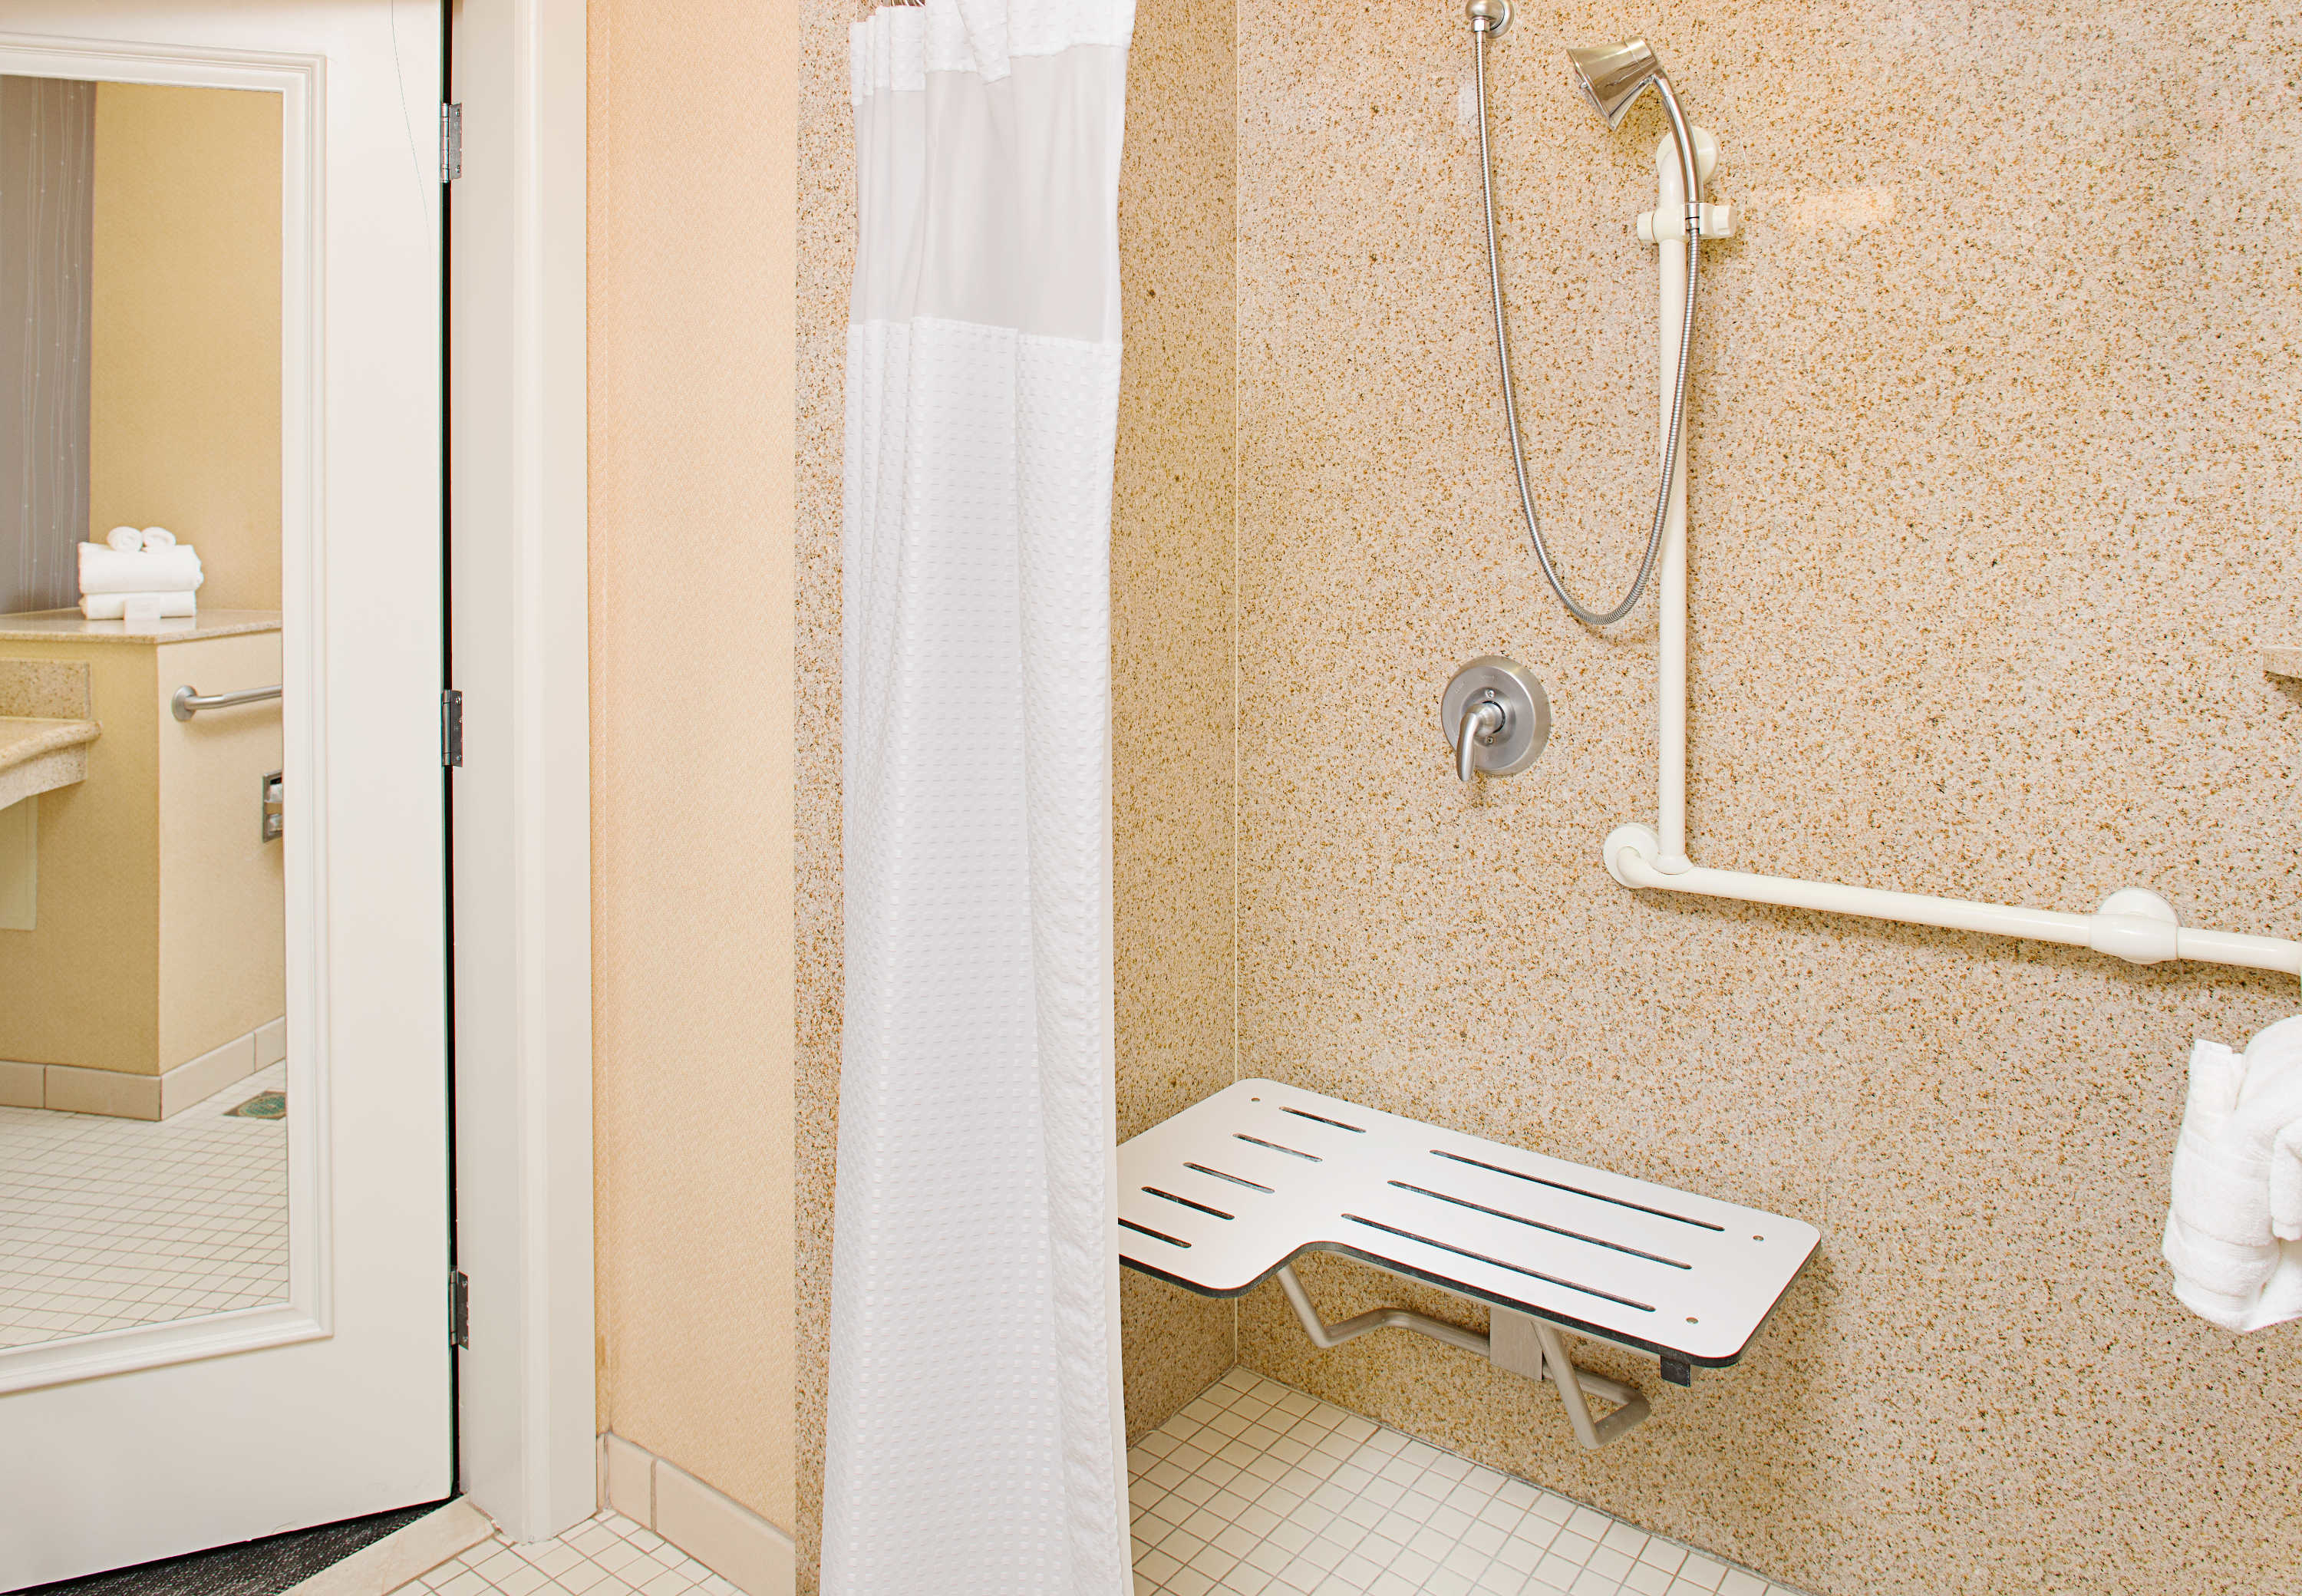 Courtyard by Marriott Paso Robles image 10